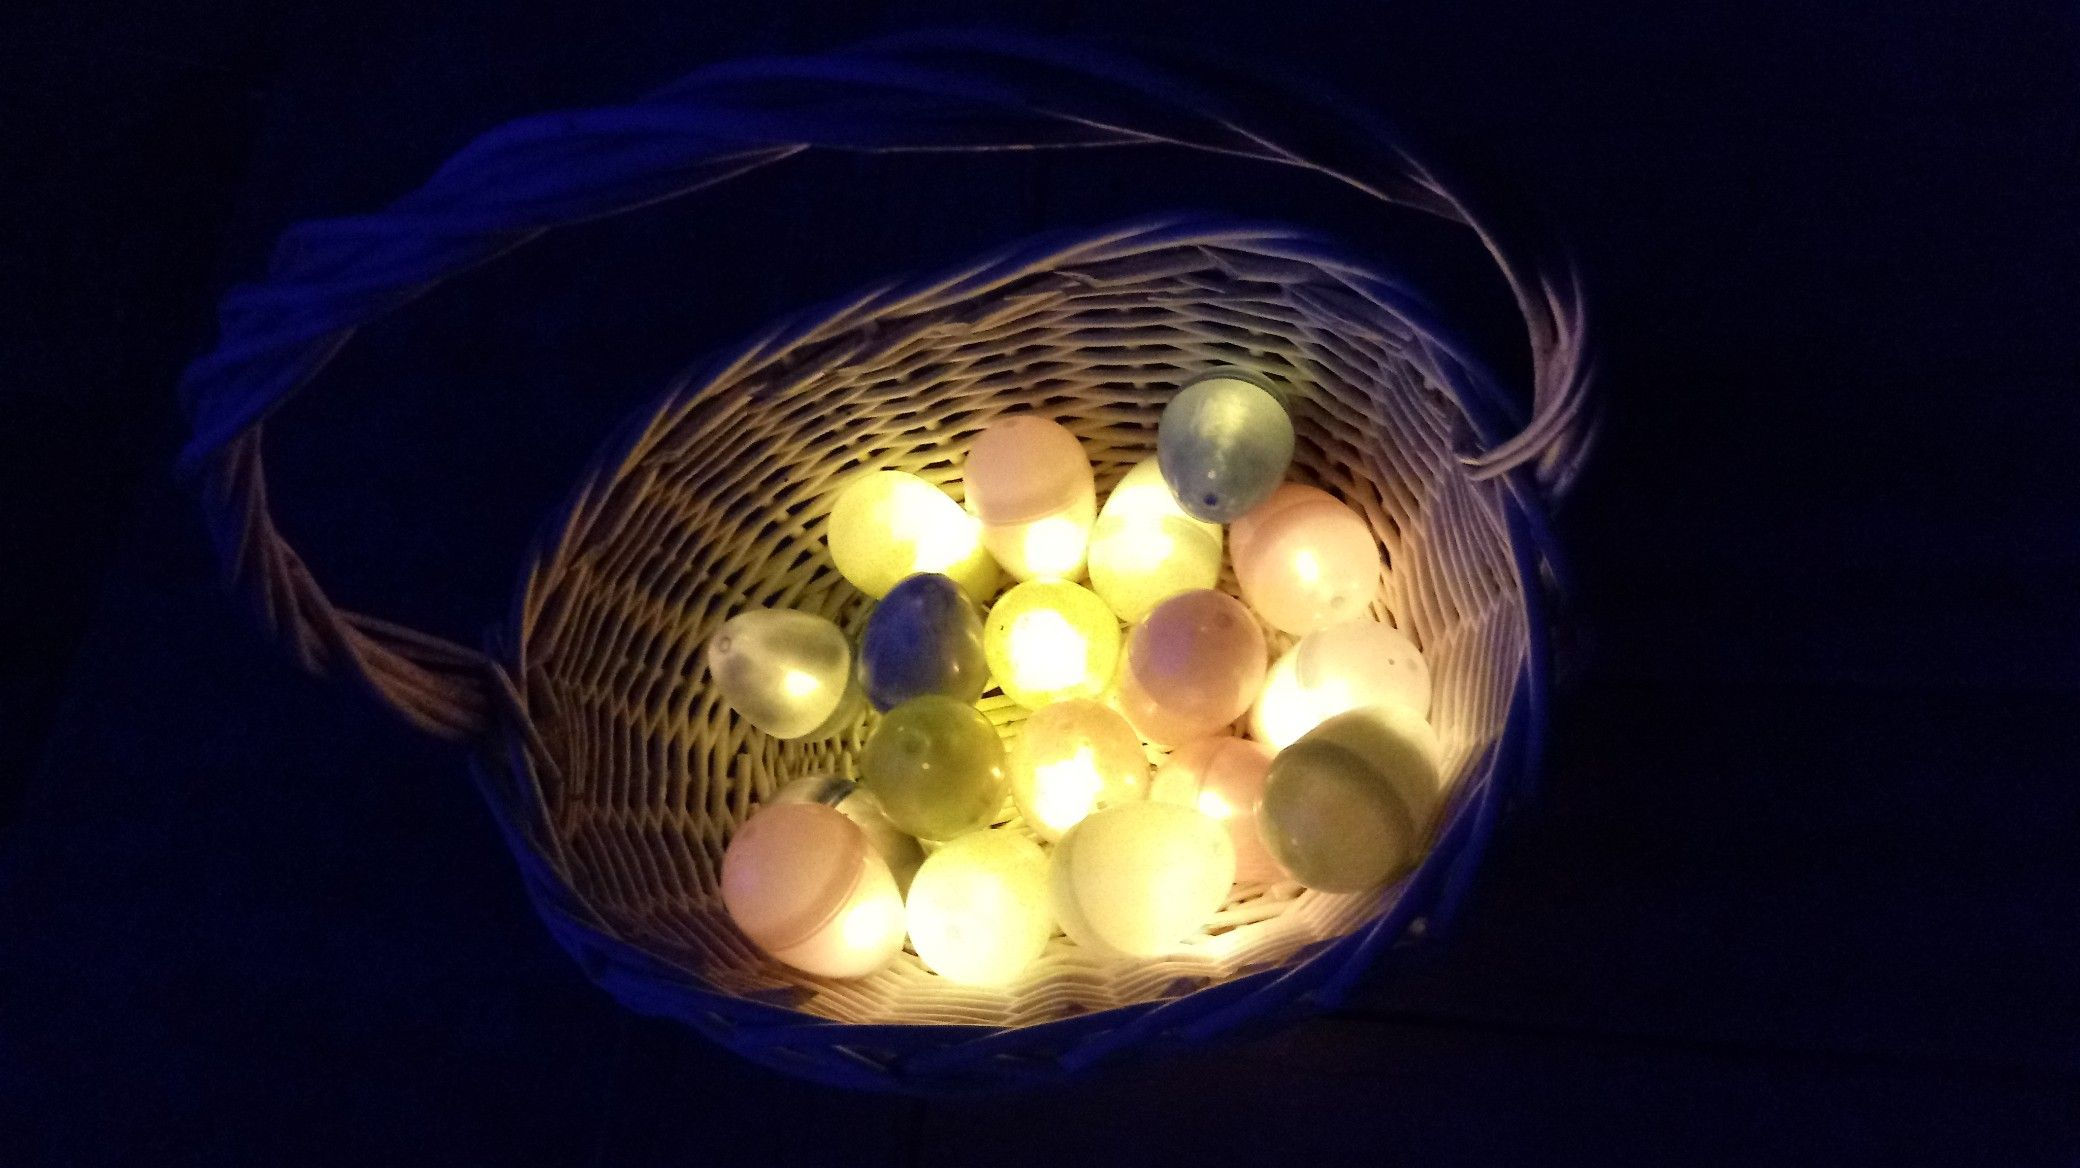 Glow-in-the-Dark egg hunt; place LED battery operated tea ...